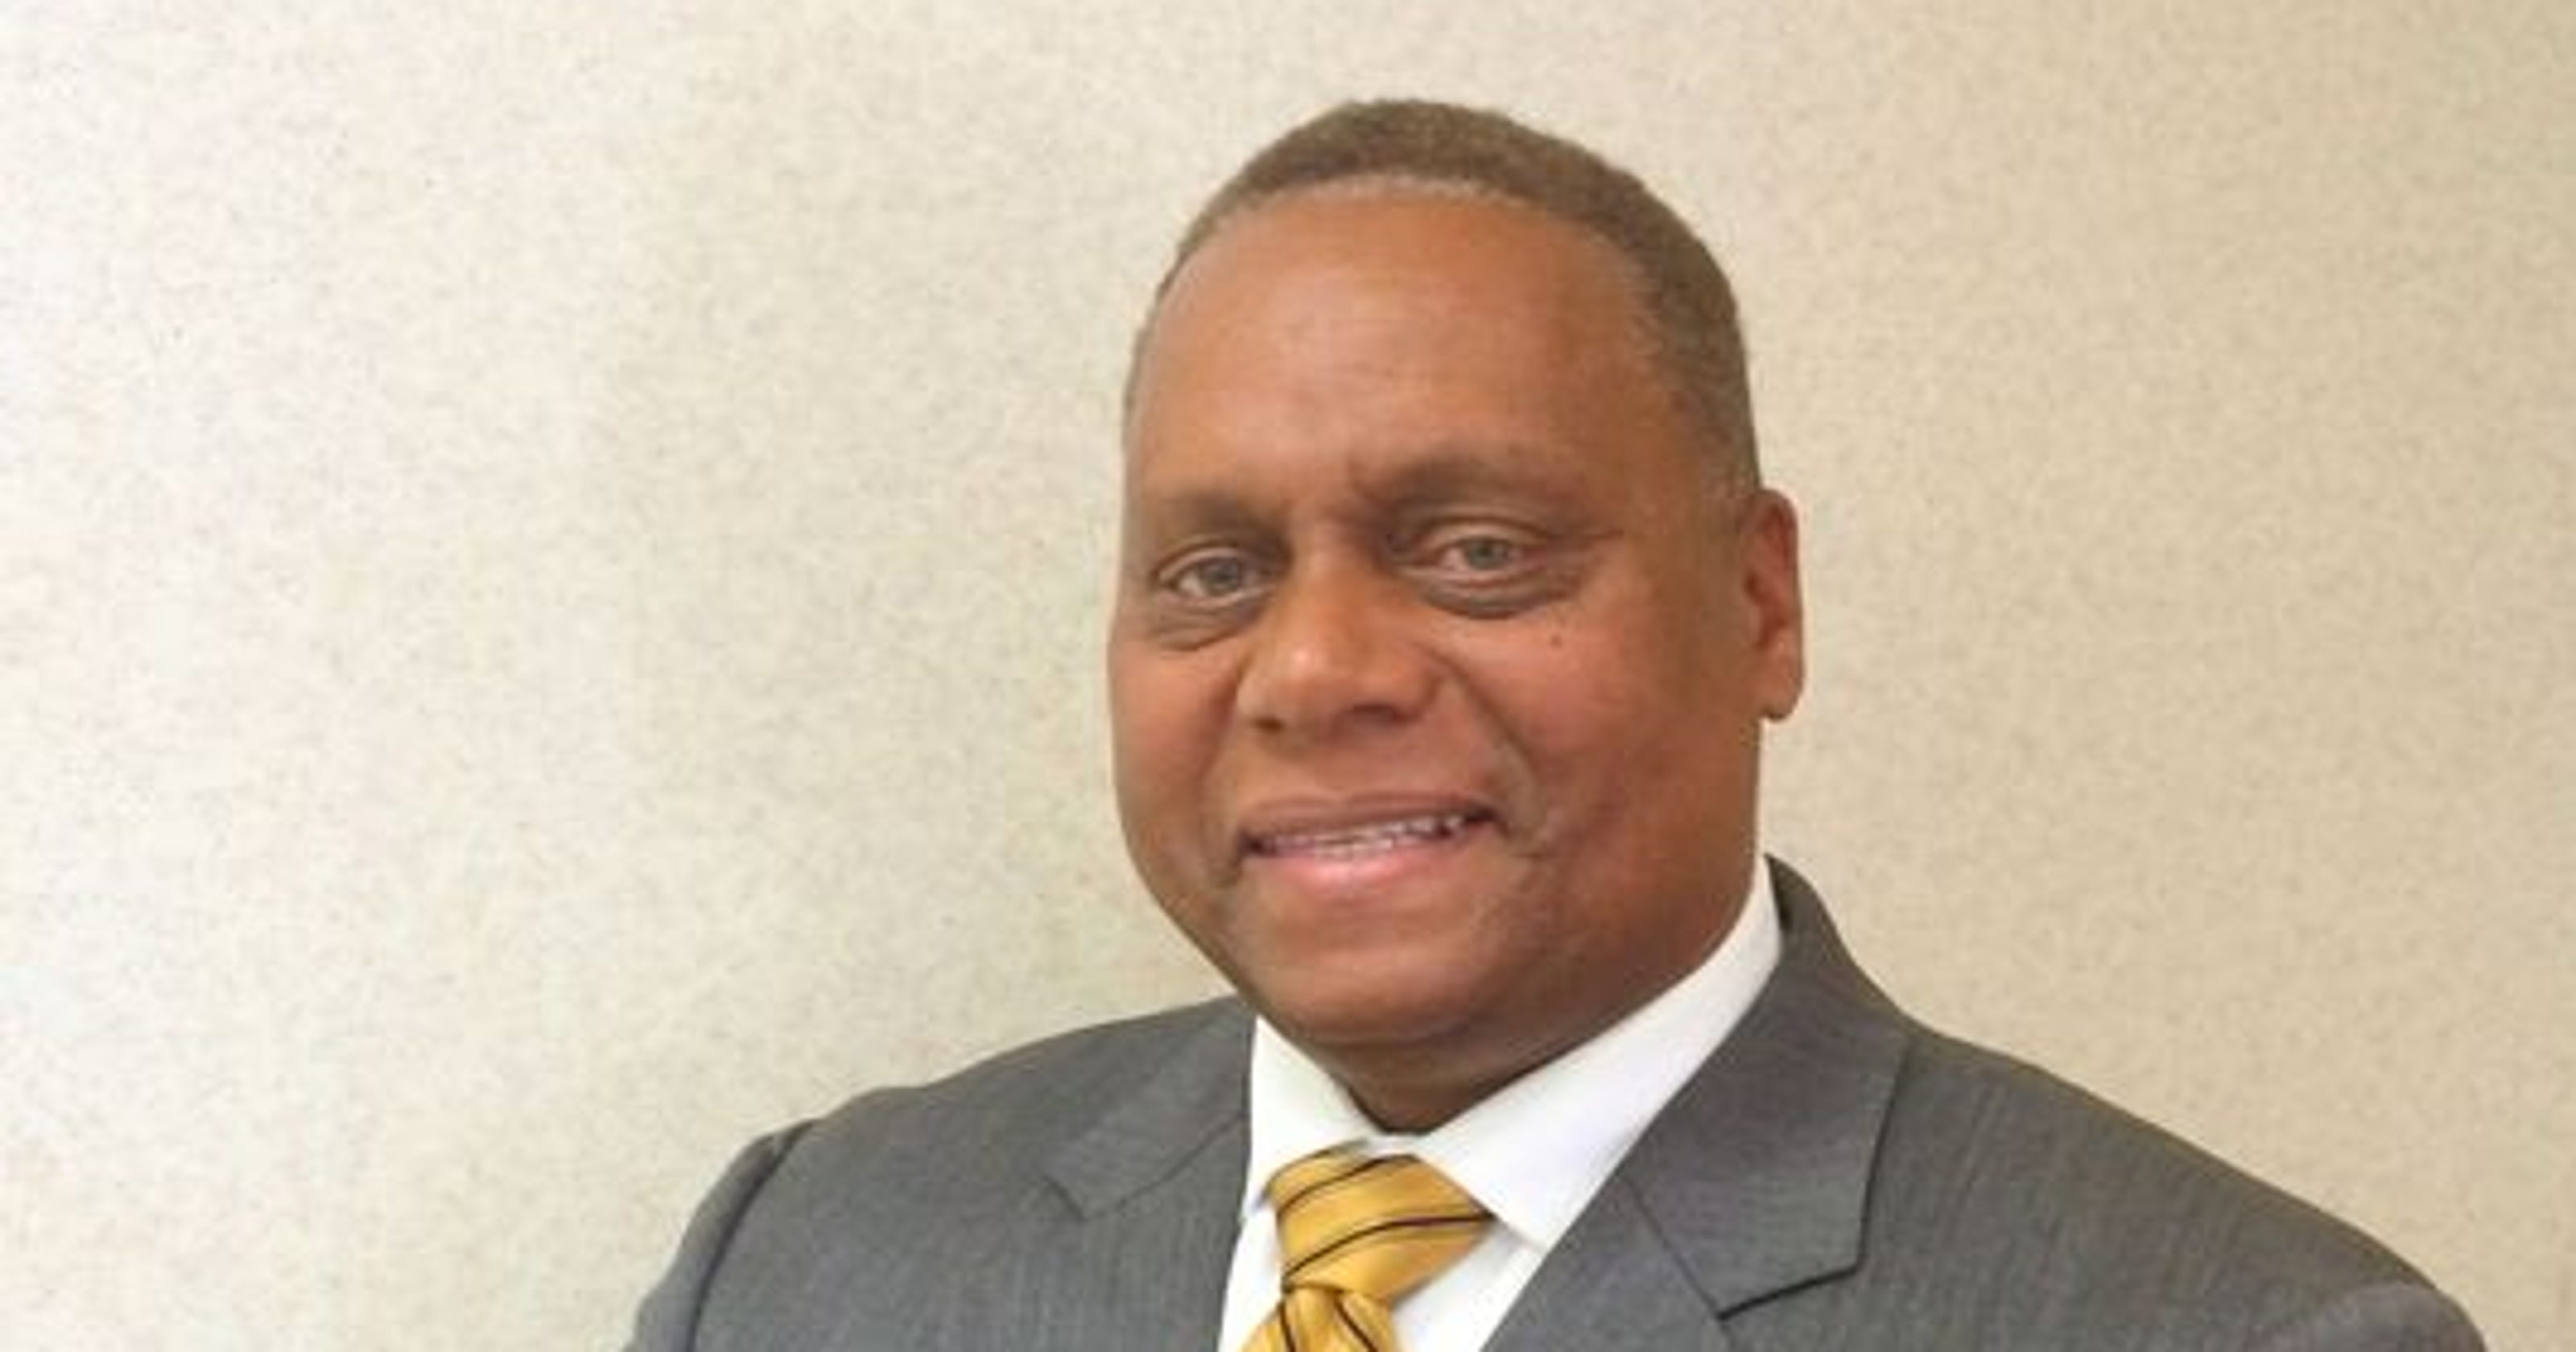 Wilmington Housing Authority hires director with troubled